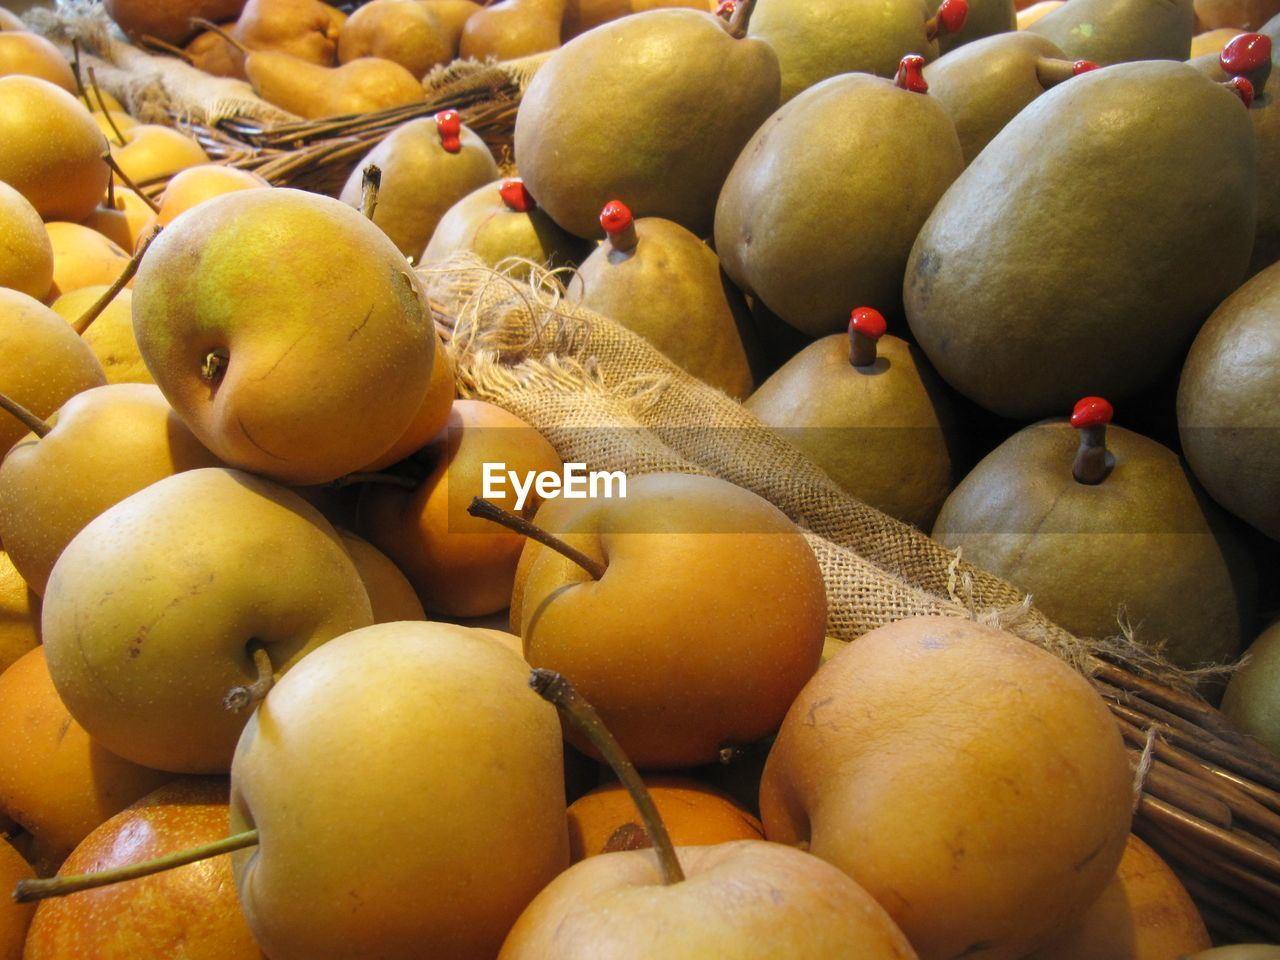 fruit, food and drink, food, healthy eating, abundance, large group of objects, freshness, no people, retail, for sale, day, full frame, apple - fruit, close-up, market, outdoors